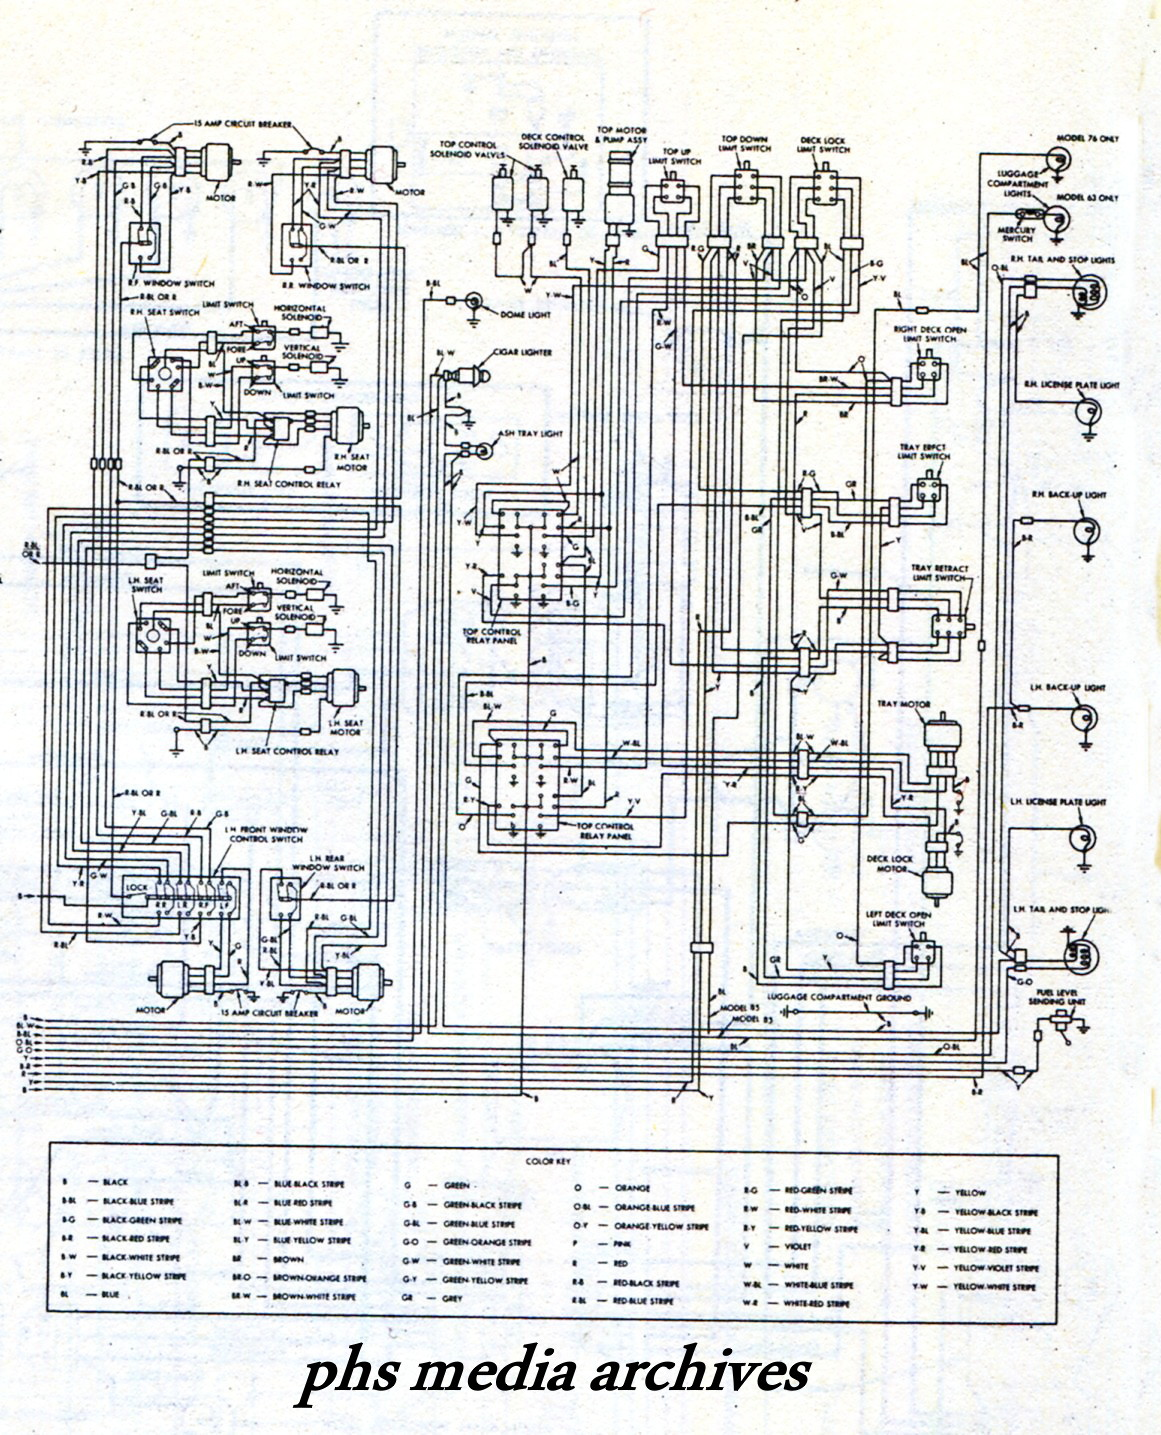 1963 Thunderbird Wiring Diagram Manual Guide Ford Tech Series 1961 Schematics Rh Phscollectorcarworld Blogspot Com 1966 1962